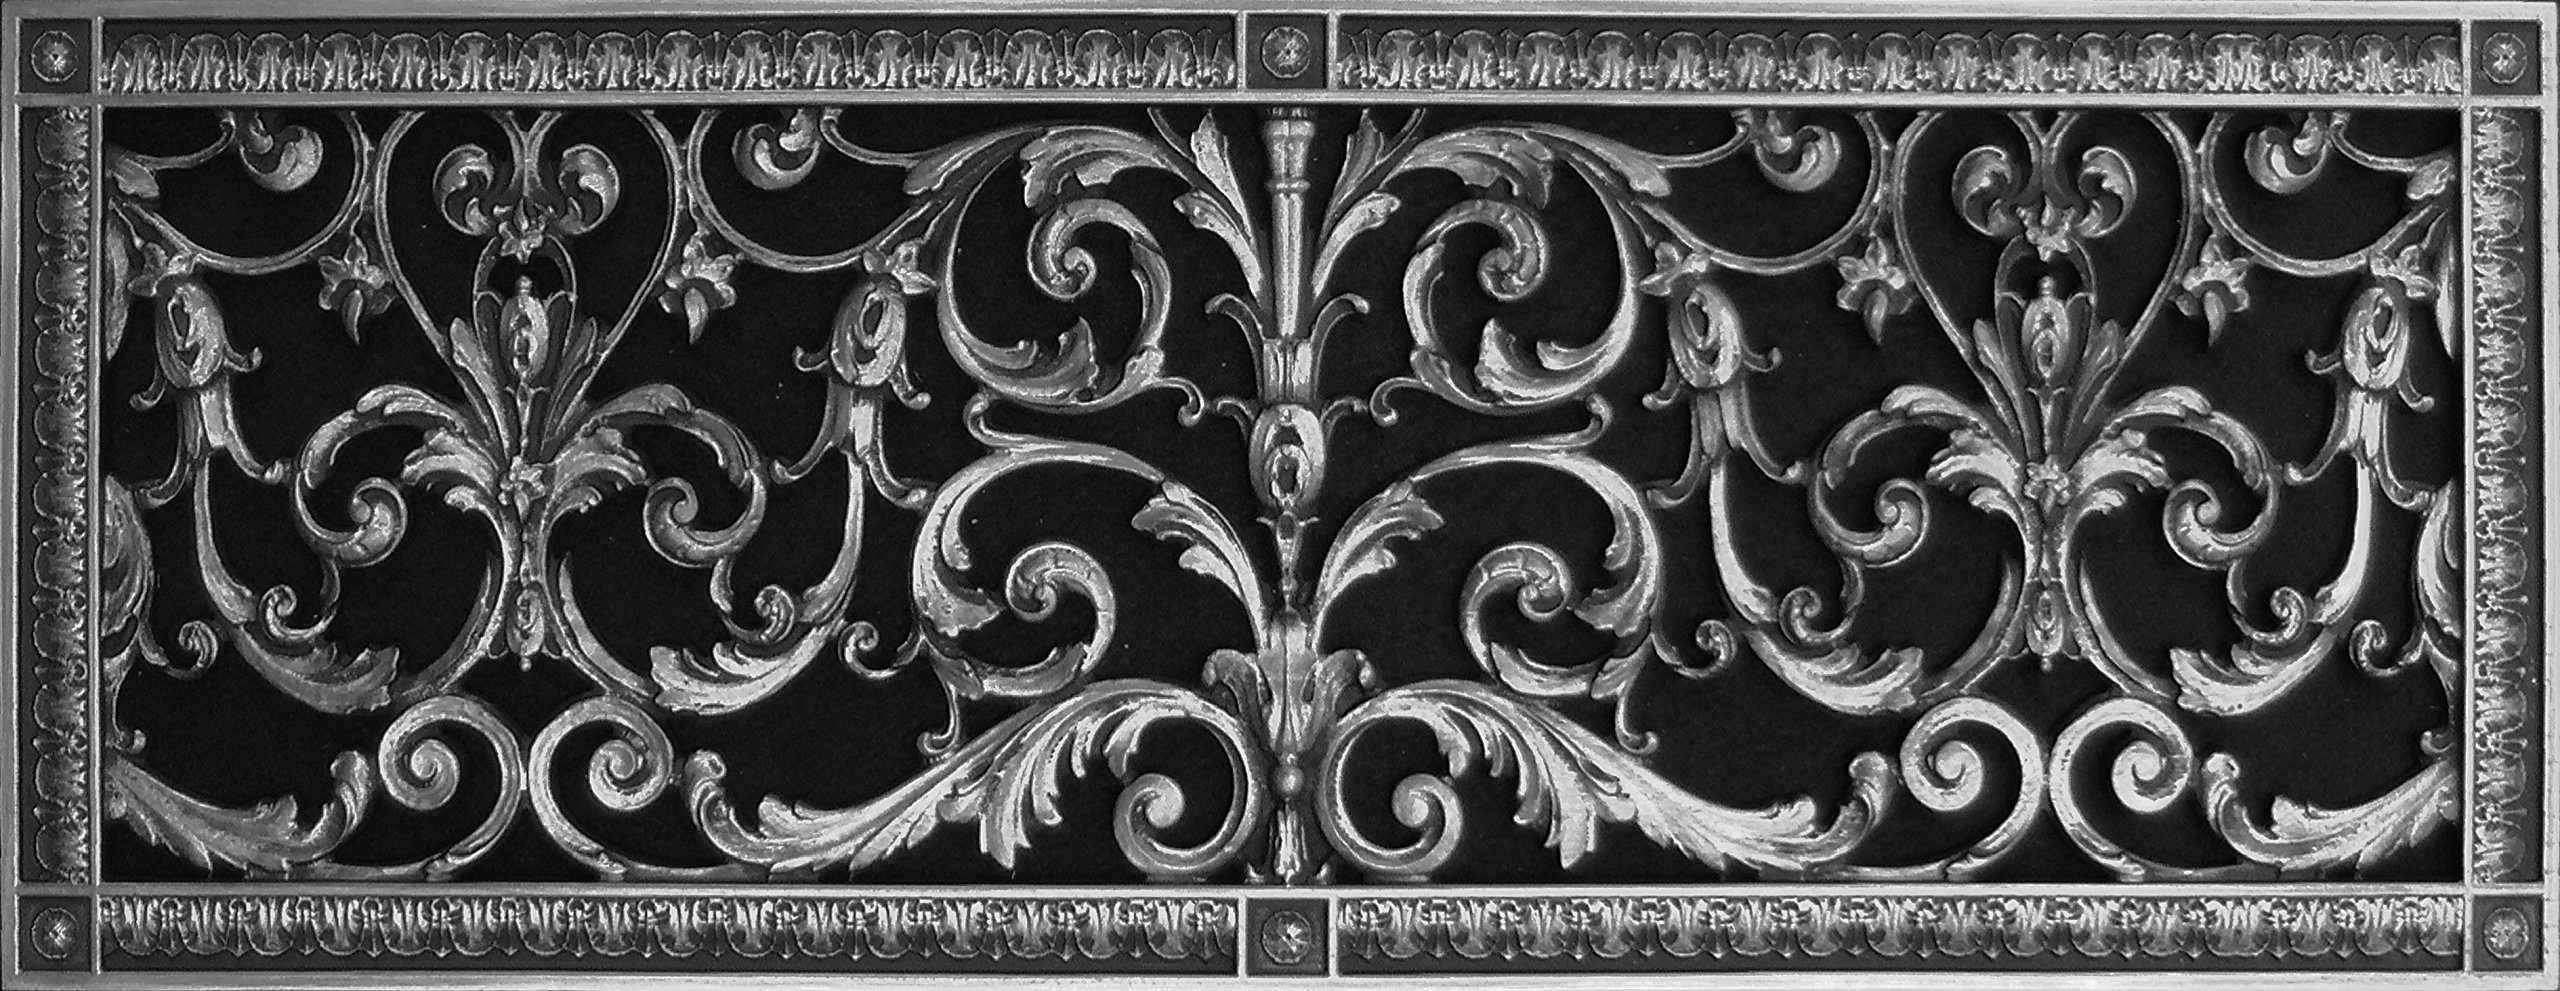 """Decorative Vent Cover, Grille, made of Urethane Resin in Louis XIV, French style fits over a 8""""x 24"""", Total size, 10"""" by 26"""", for wall & ceiling installation only. (not for floors) (Pewter)"""